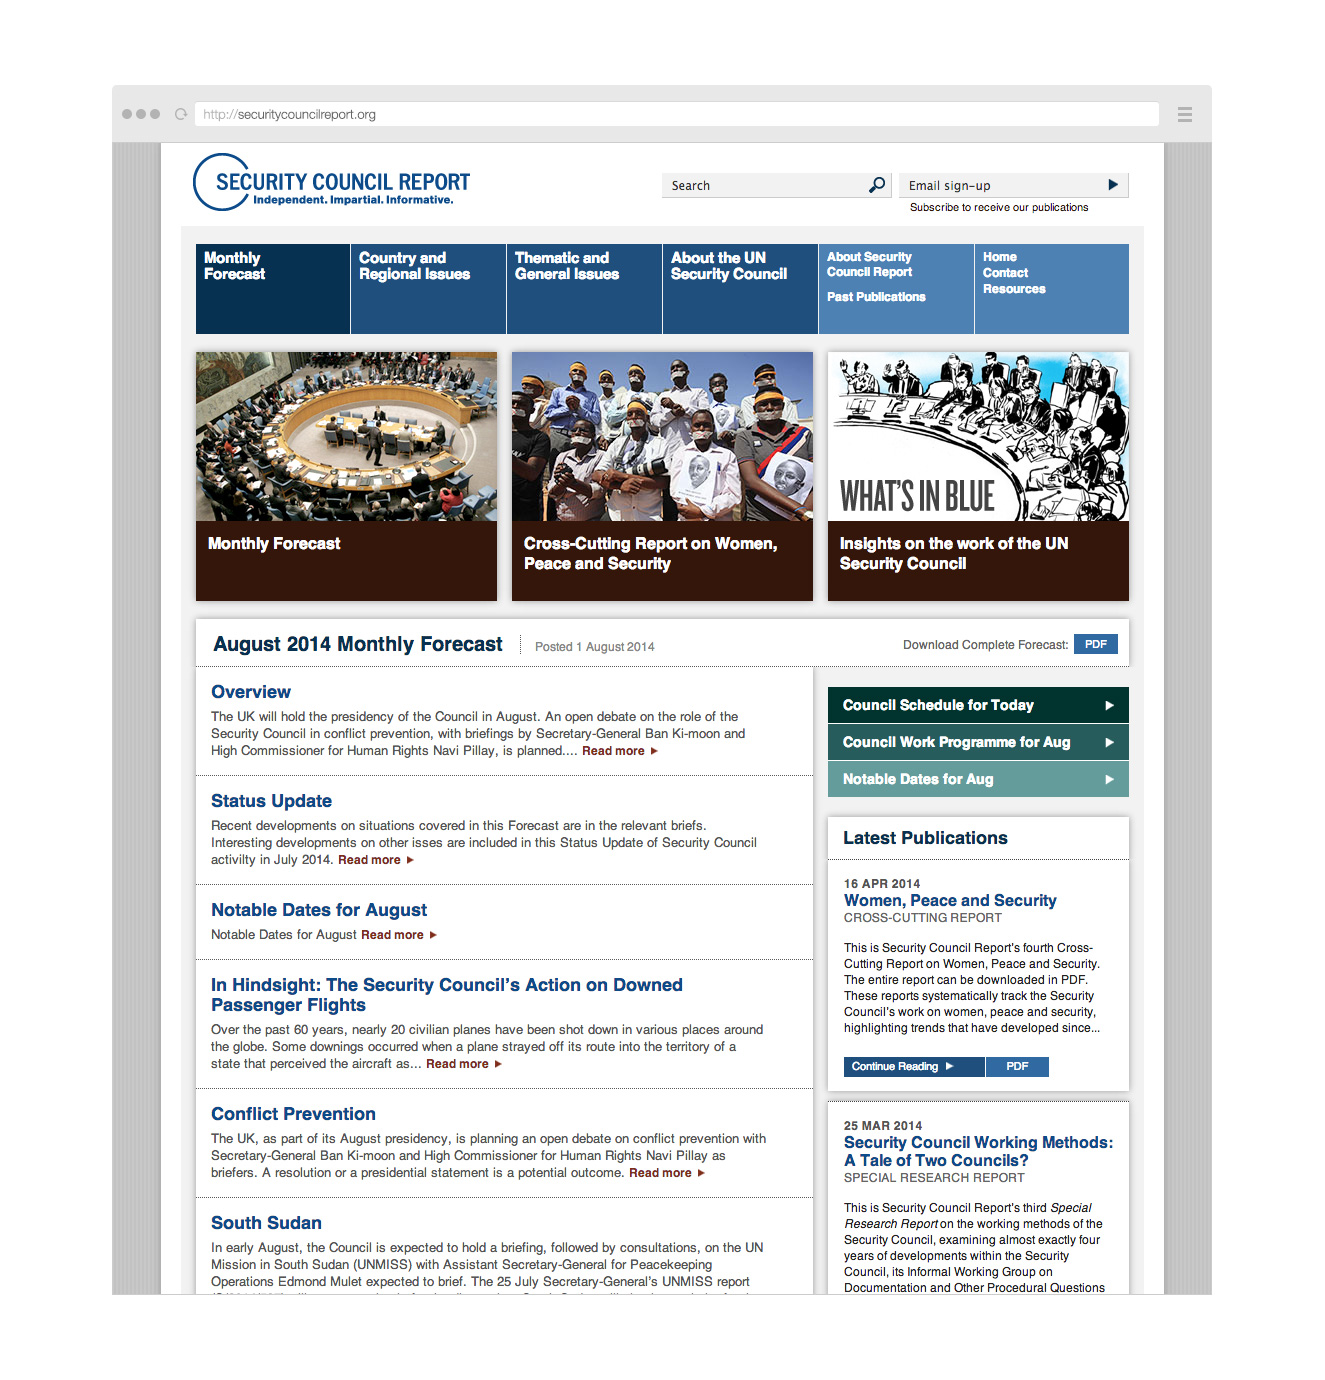 Security Council Report website